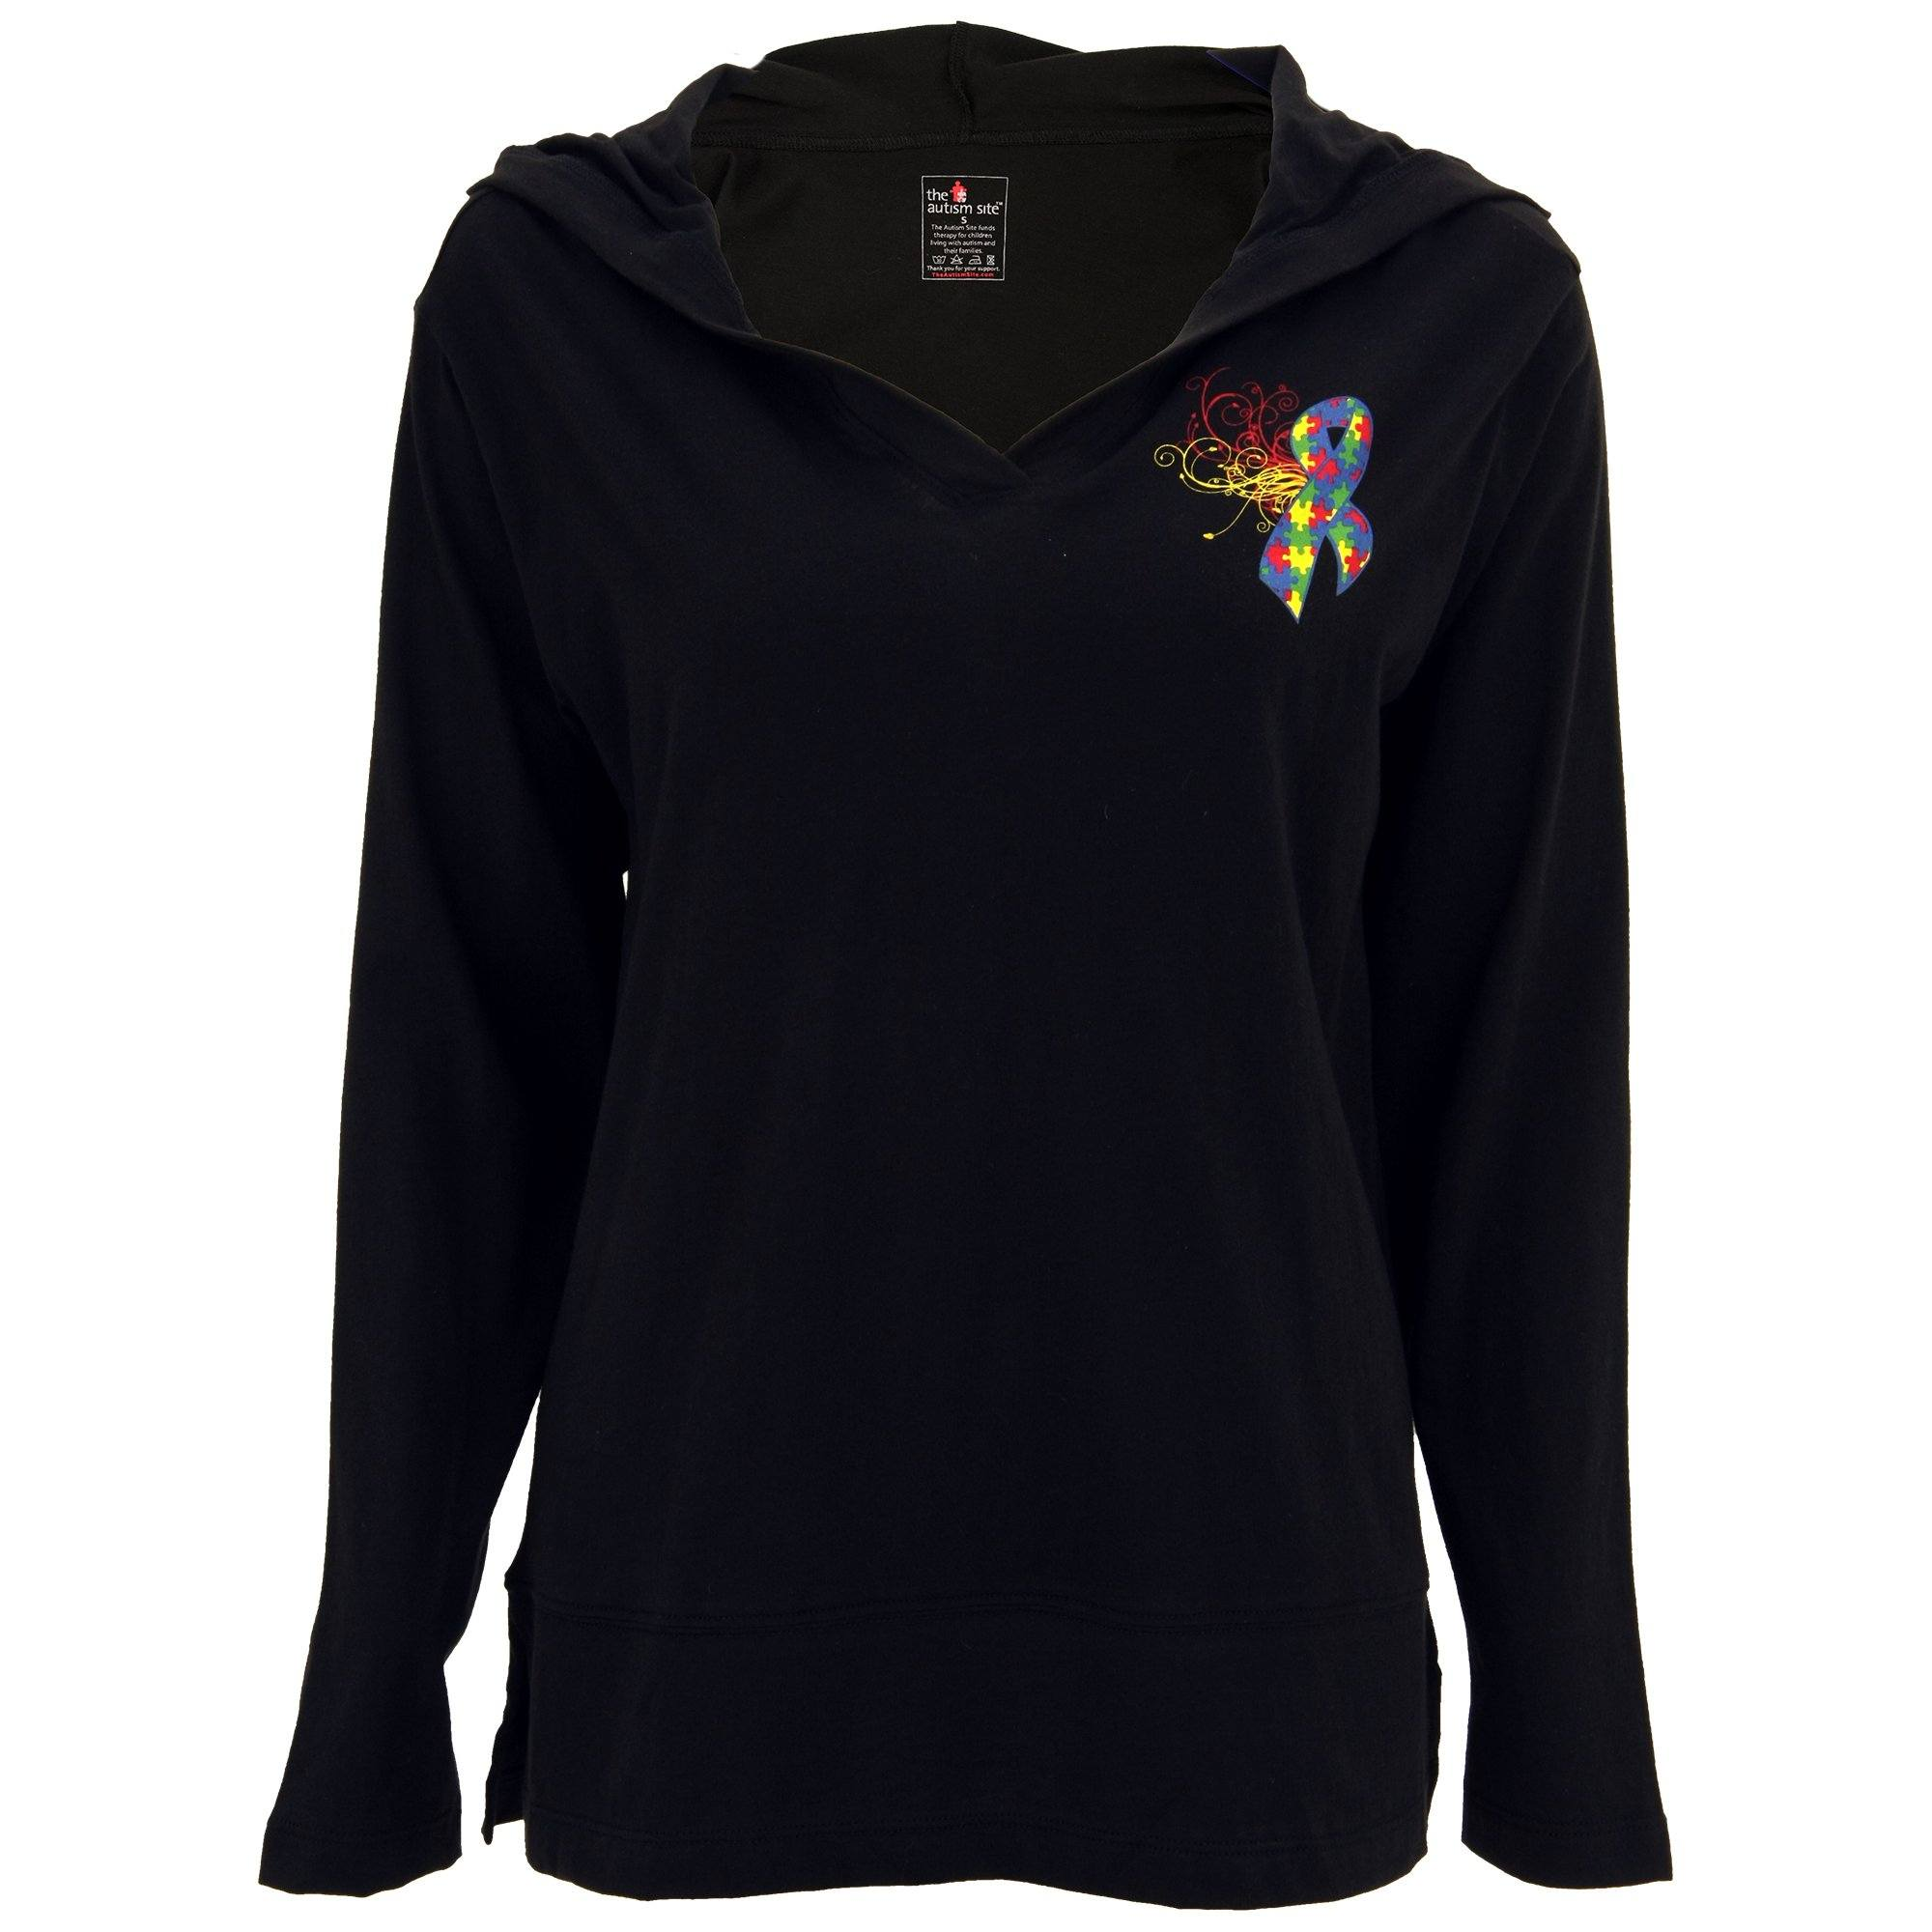 55815f7cfe2 Autism Awareness Ribbon Lightweight Hooded Tunic| The Autism Site